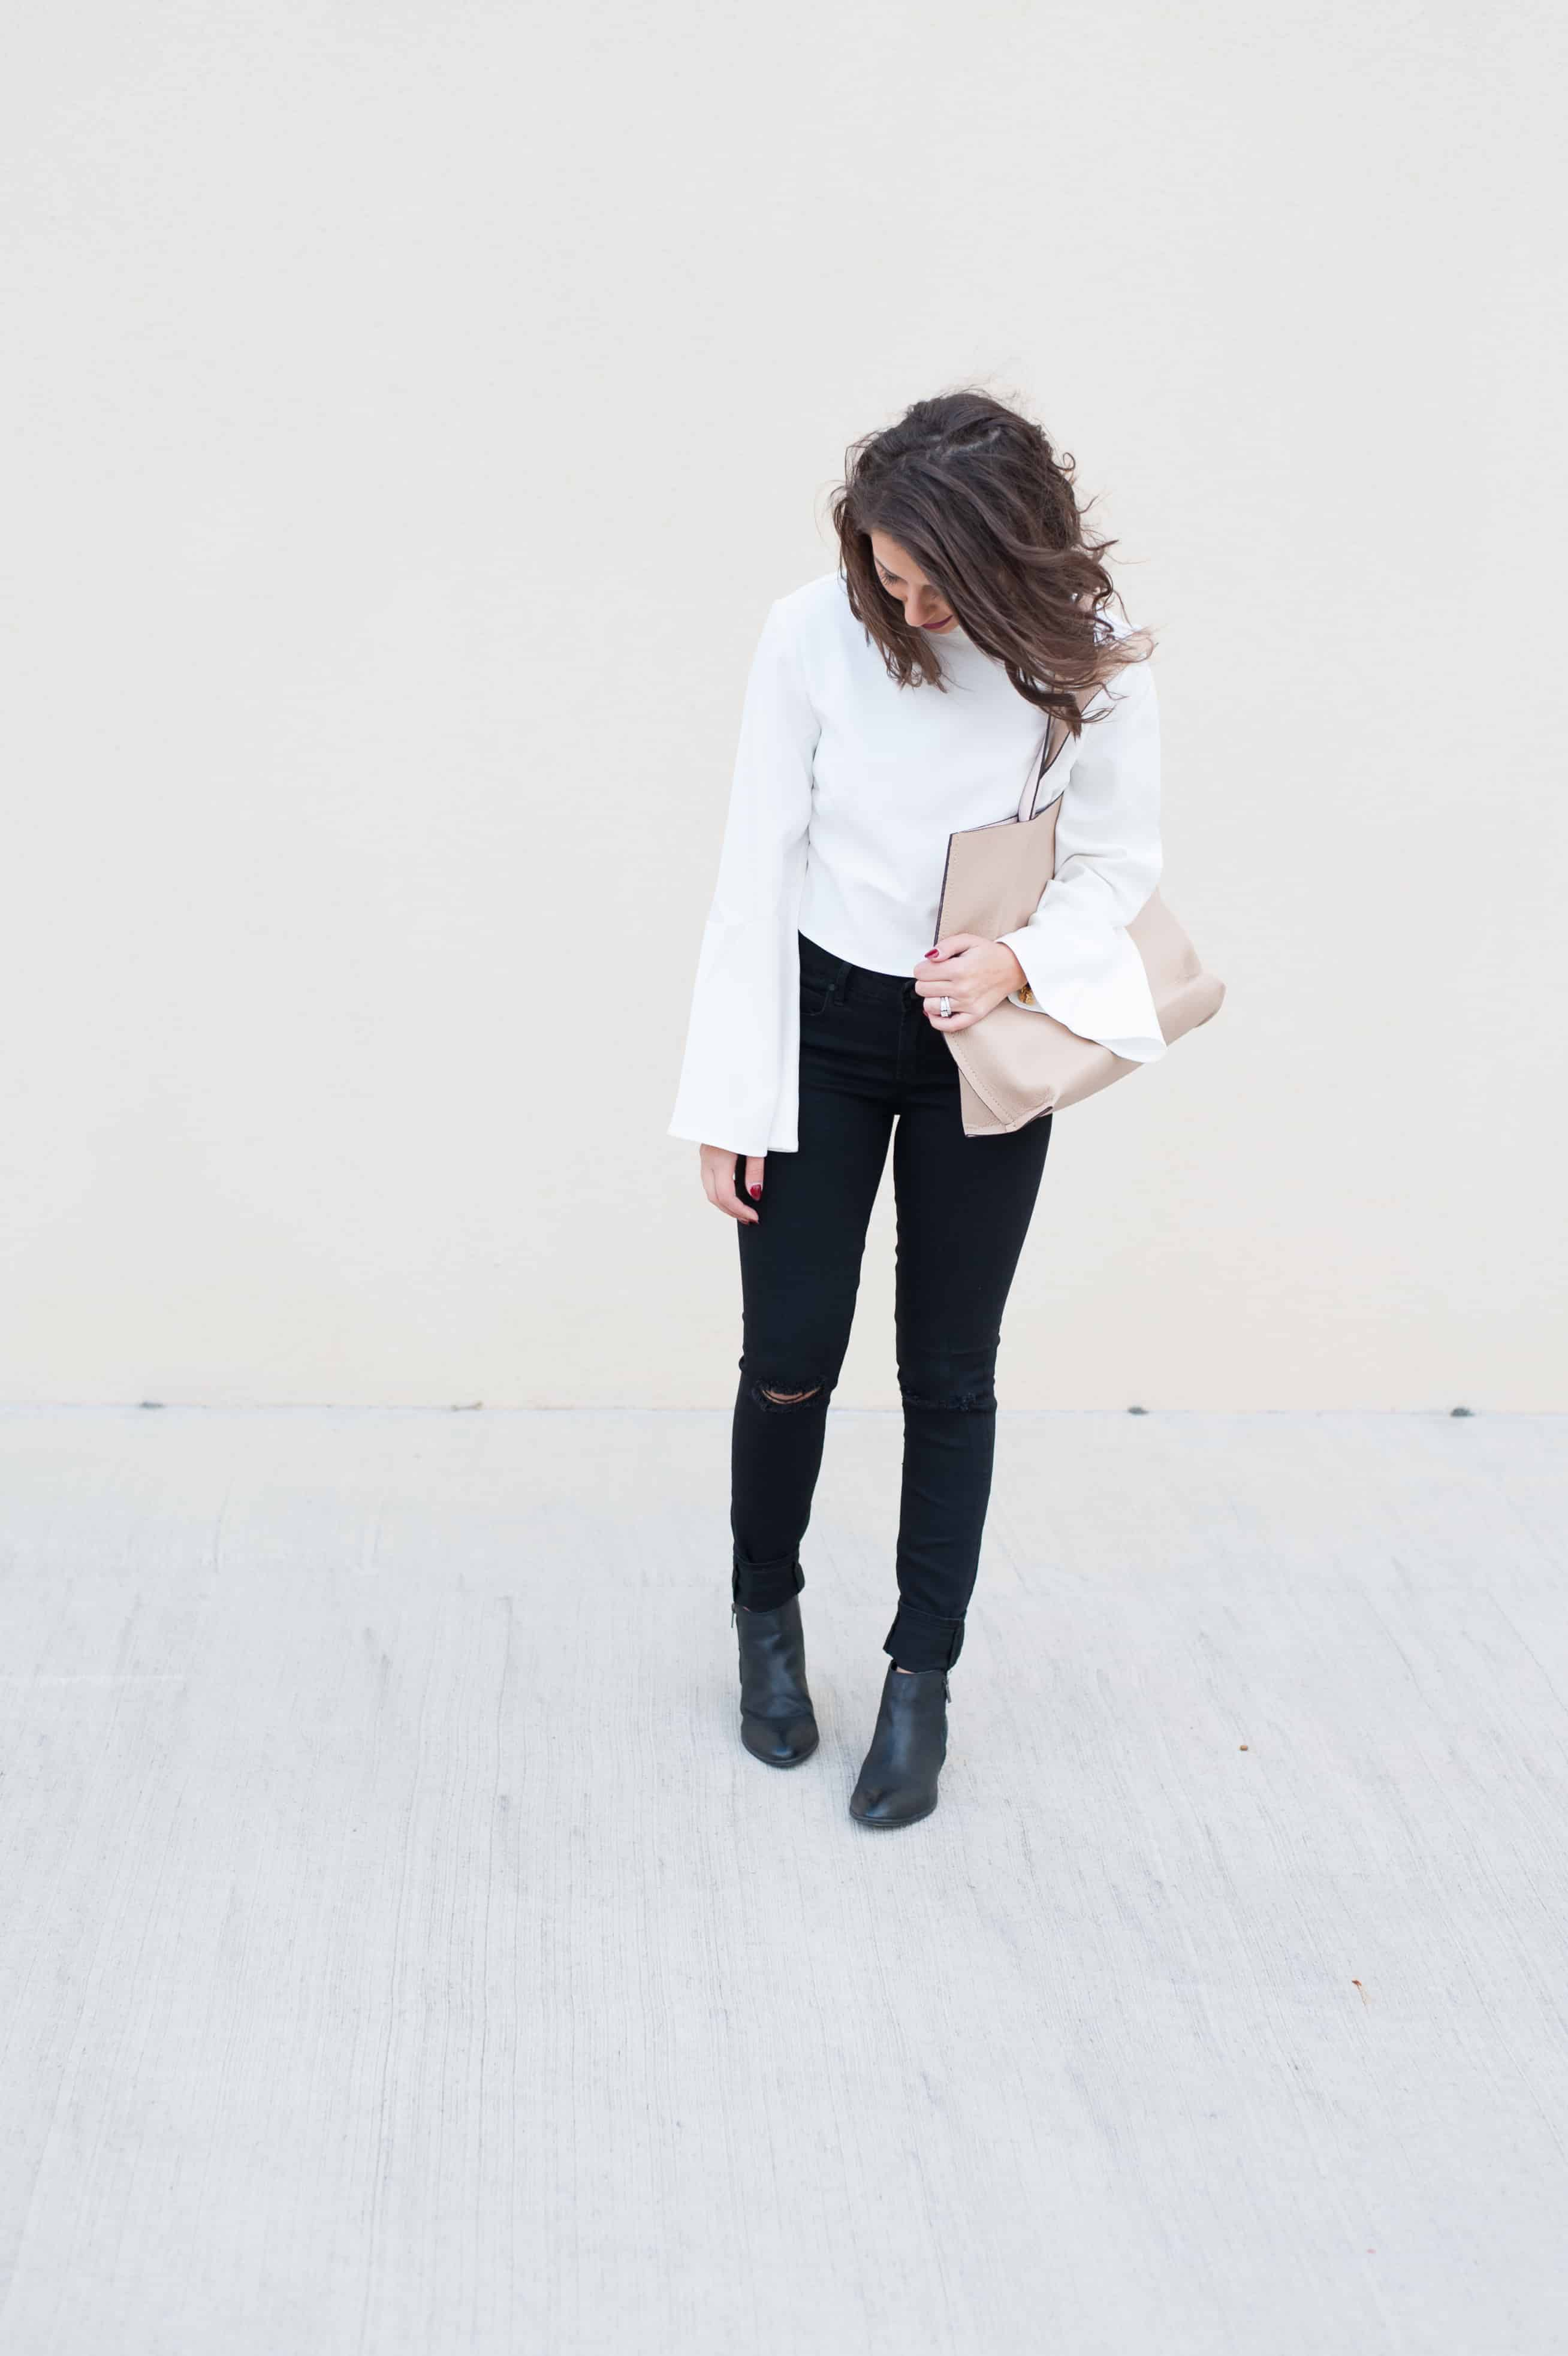 dress_up_buttercup_dede_raad_fashion_blogger_houston (2 of 8)